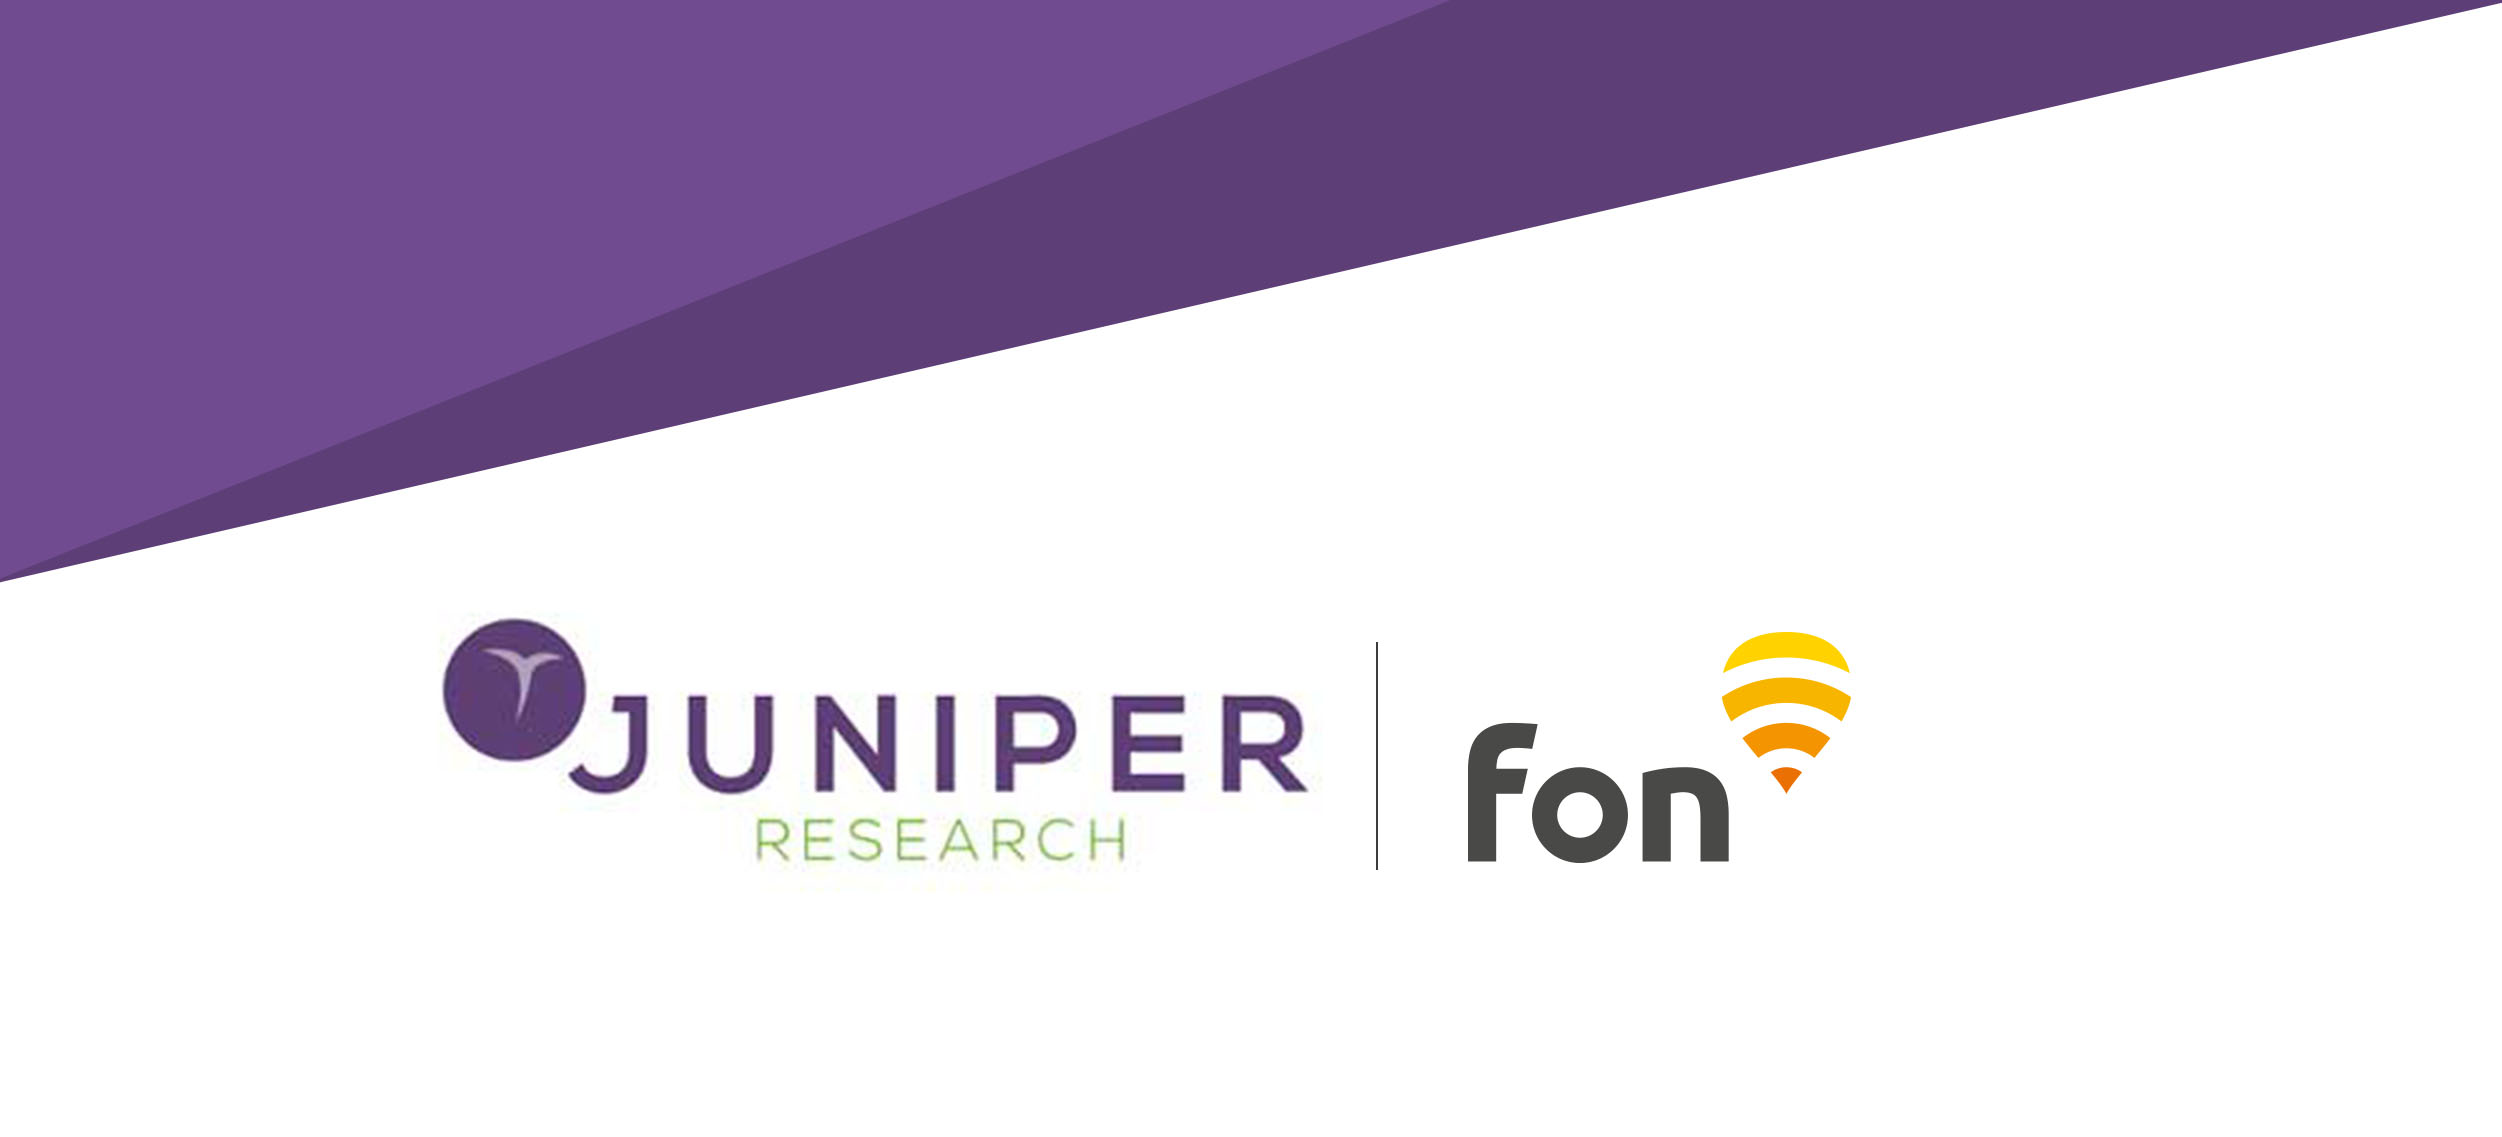 Juniper report about data offload | Fon